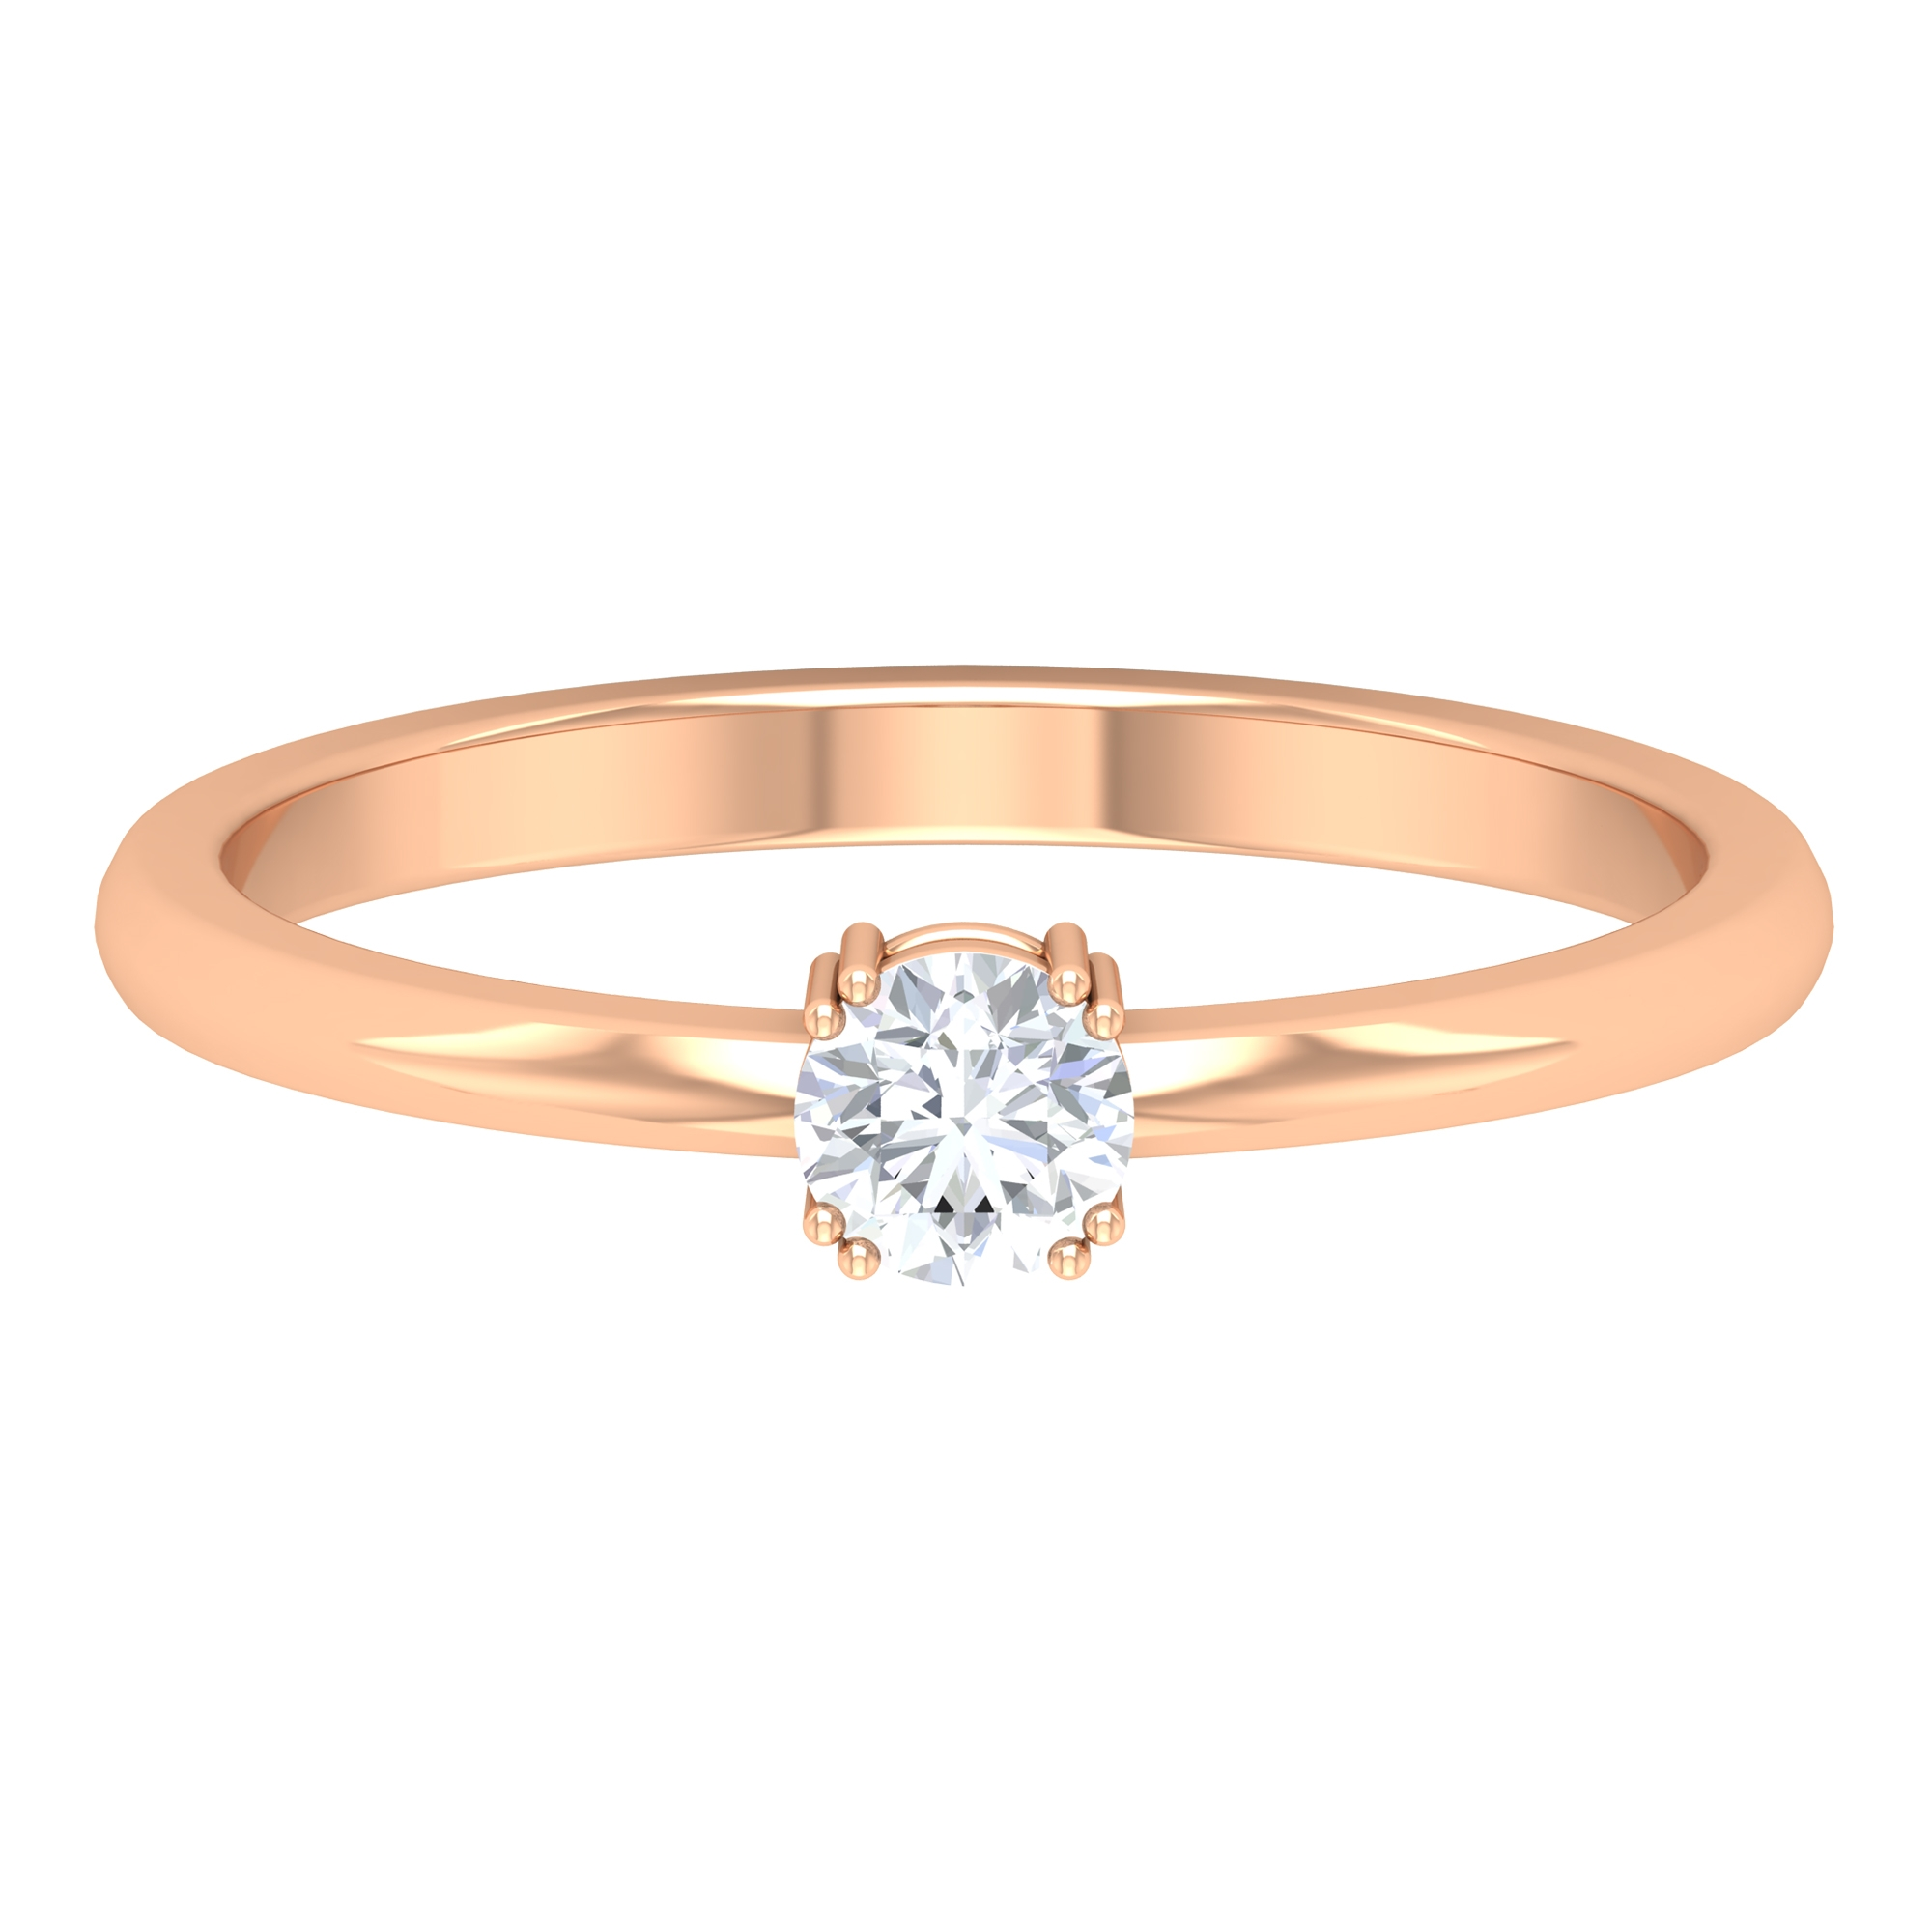 4 MM Round Cut Diamond Solitaire Ring in Double Prong Setting